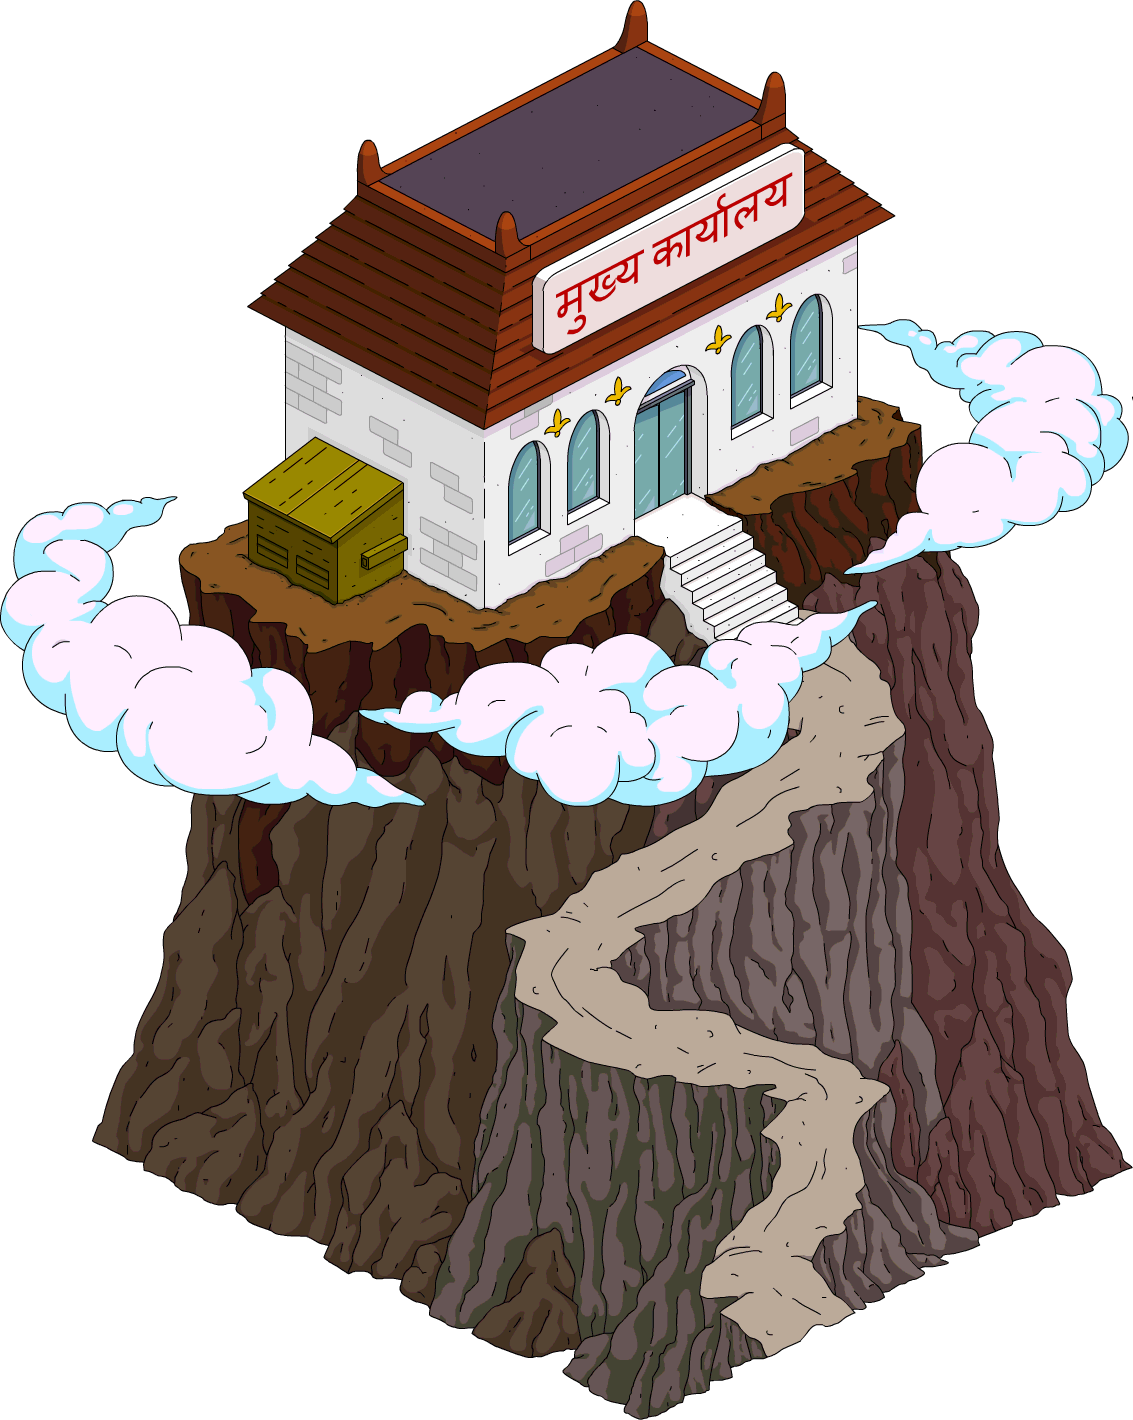 Kwik built kit homes clipart svg library Kwik-E-Mart Central Office   The Simpsons: Tapped Out Wiki   FANDOM ... svg library